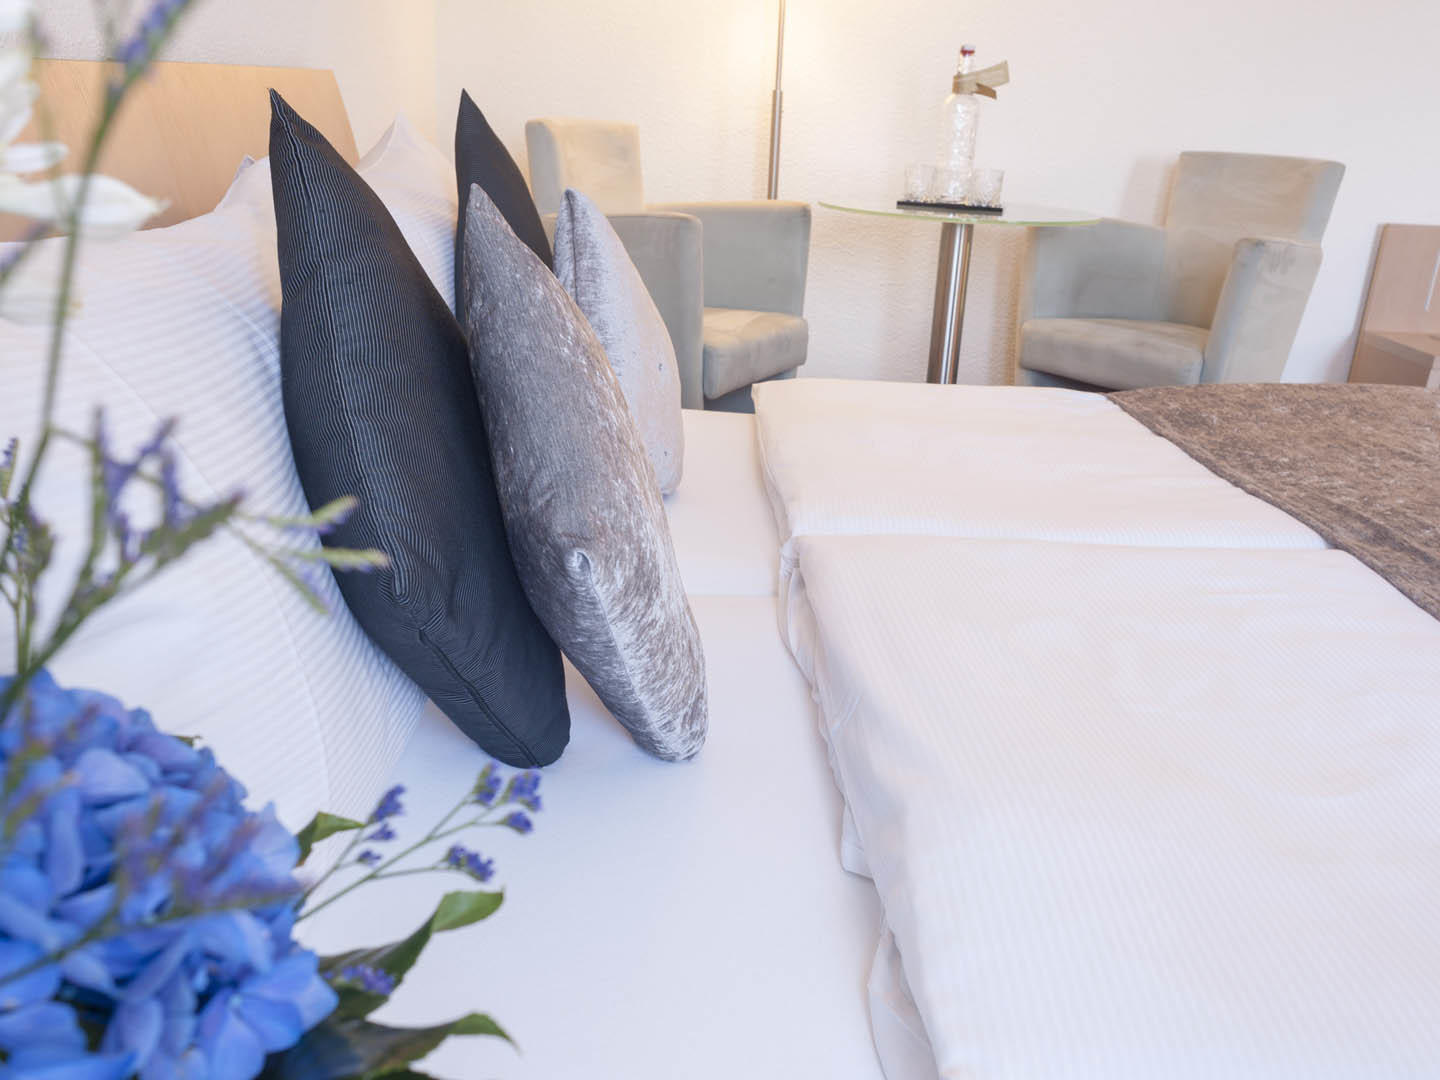 Special Offer at Hotel Krone Unterstrass in Zurich